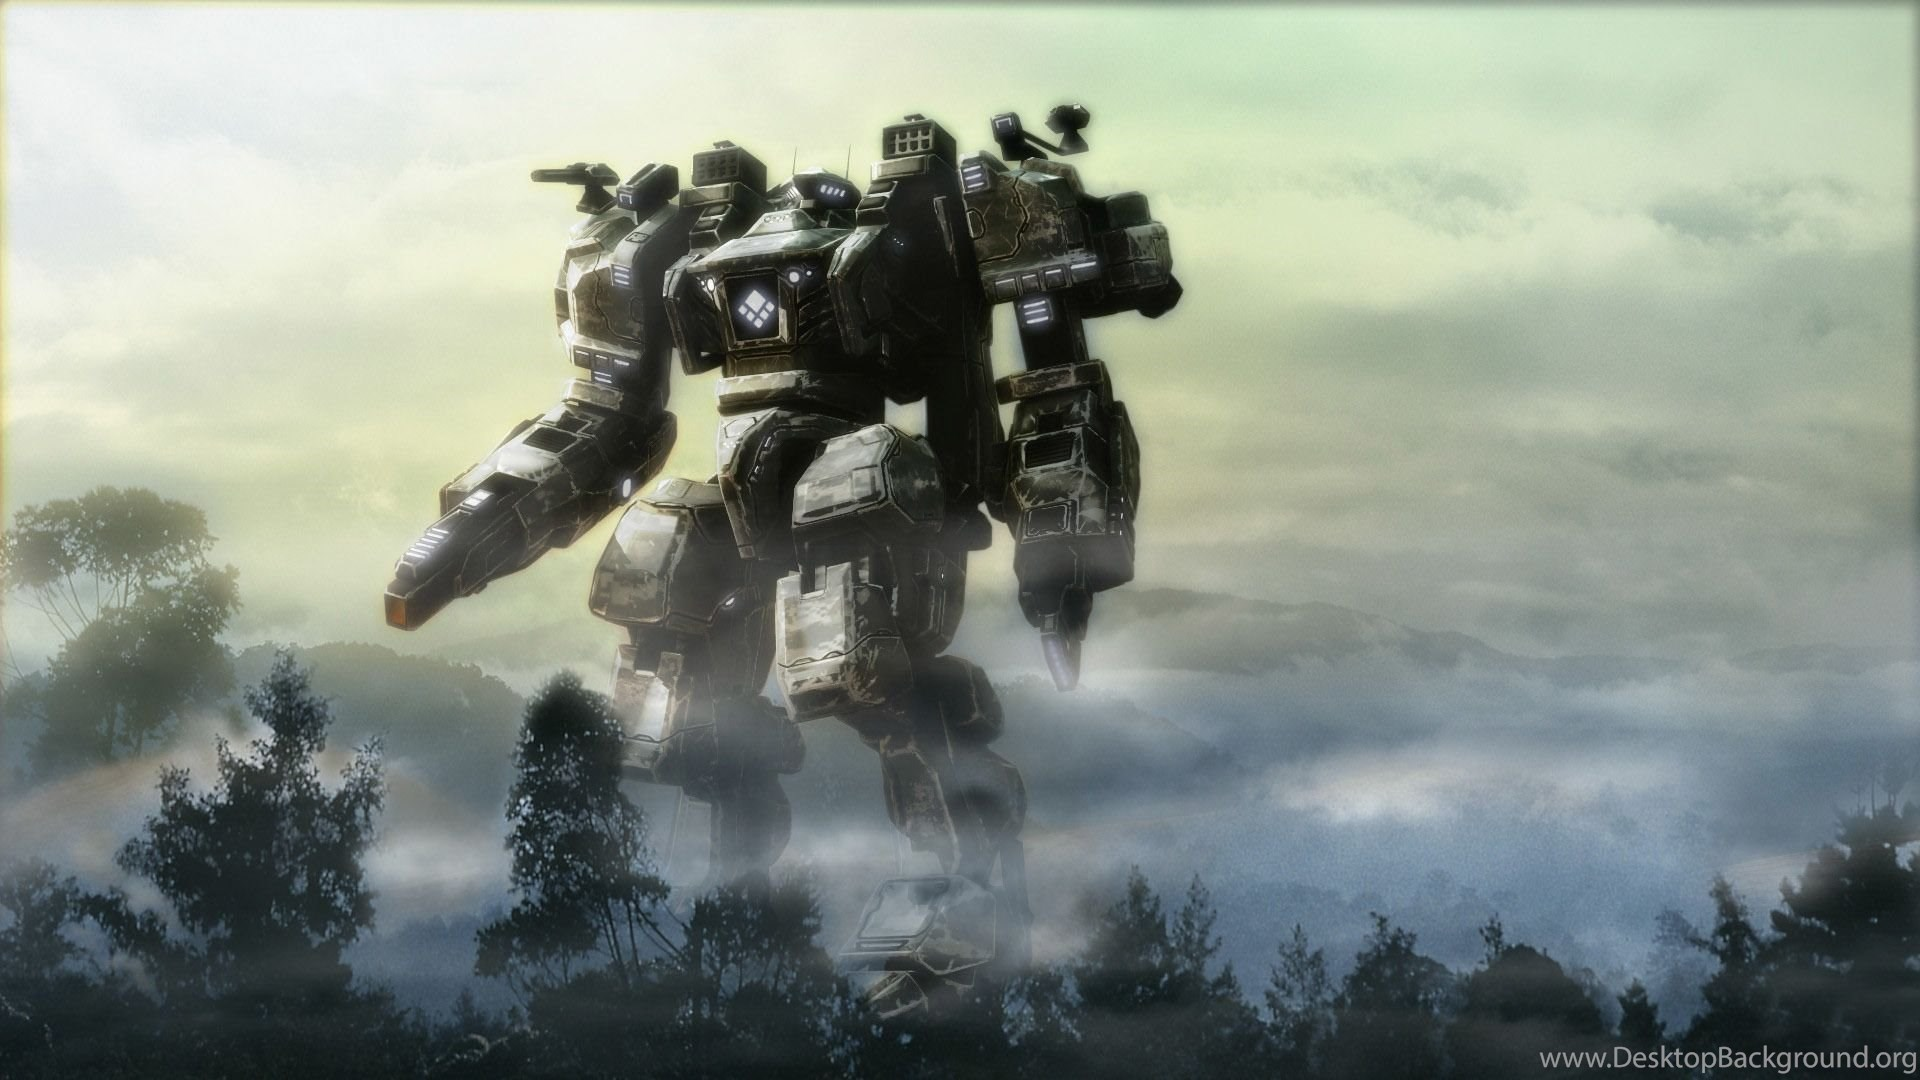 325571_robot-in-the-fog-supreme-commander-2-widescreen-wallpapers_1920x1080_h